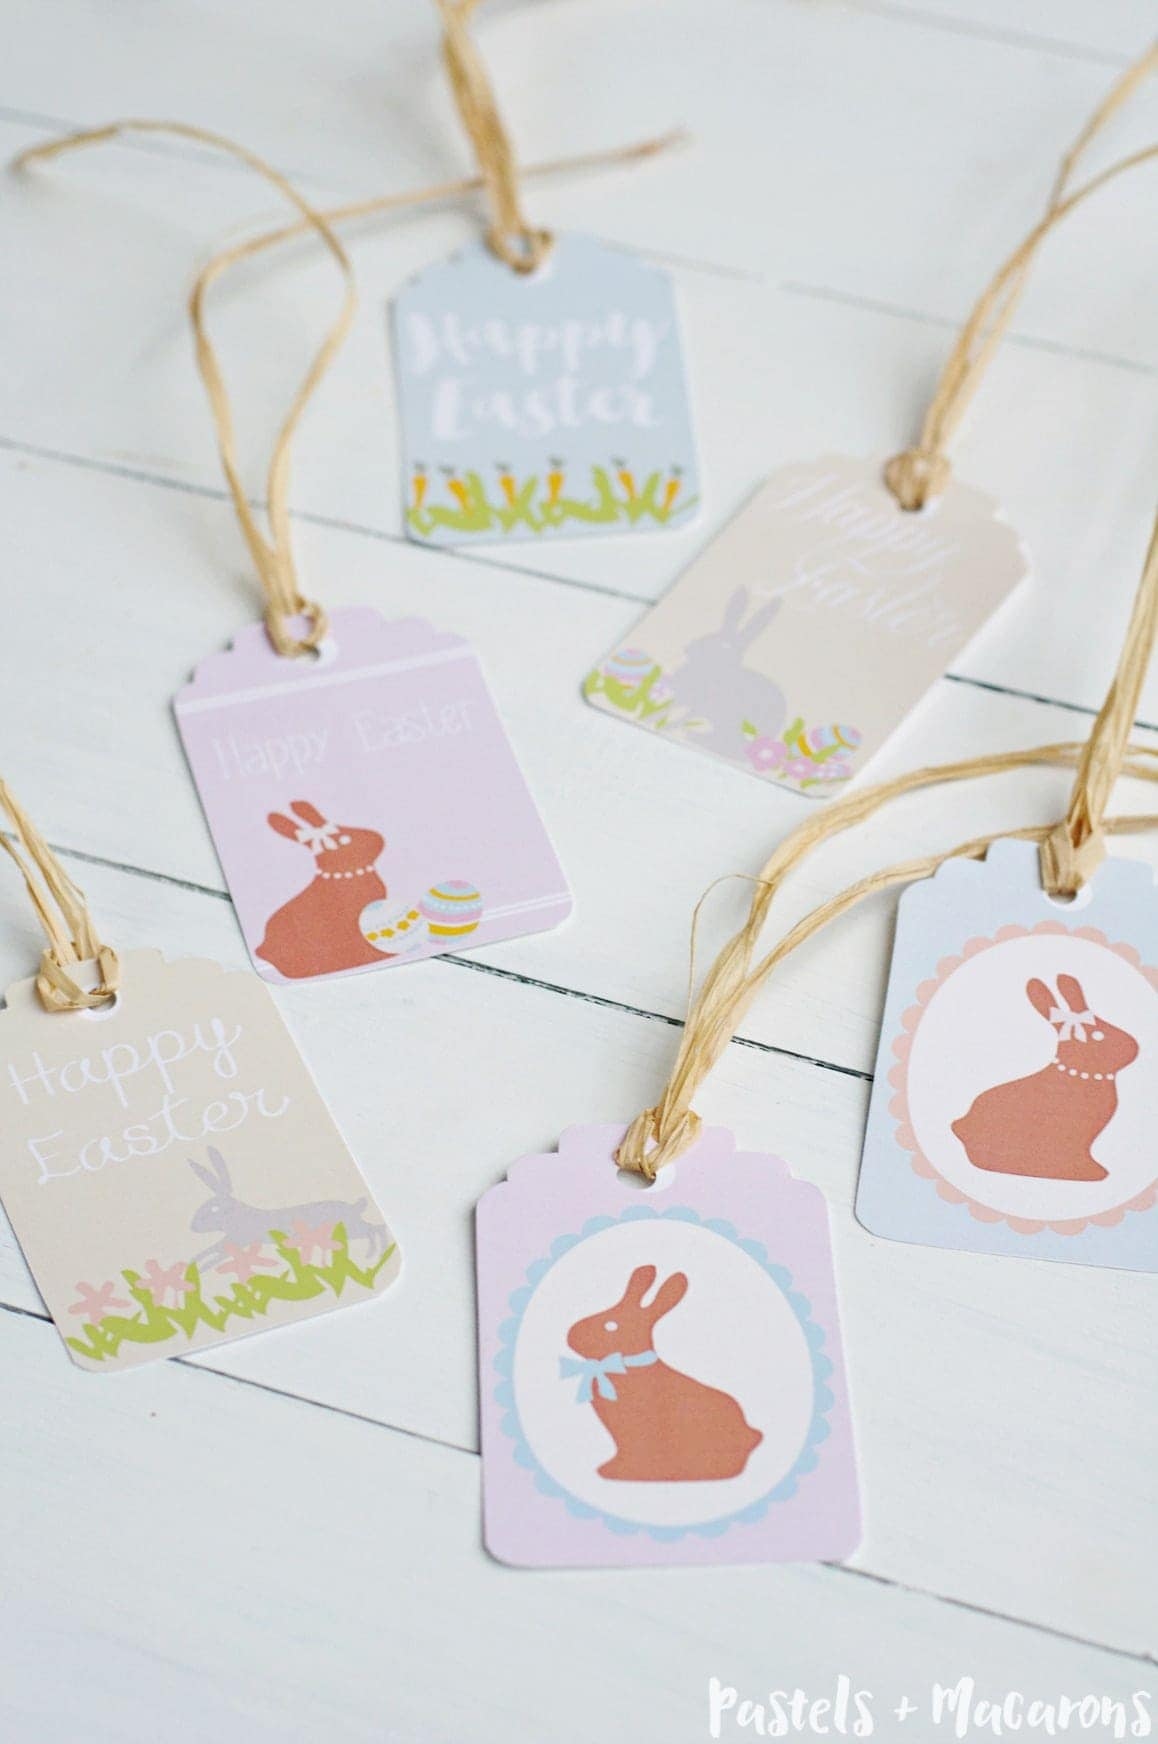 Download your Free Printable Easter Gift Tags for all your gifts this Easter. You get a six of 6 pastel colored tags!